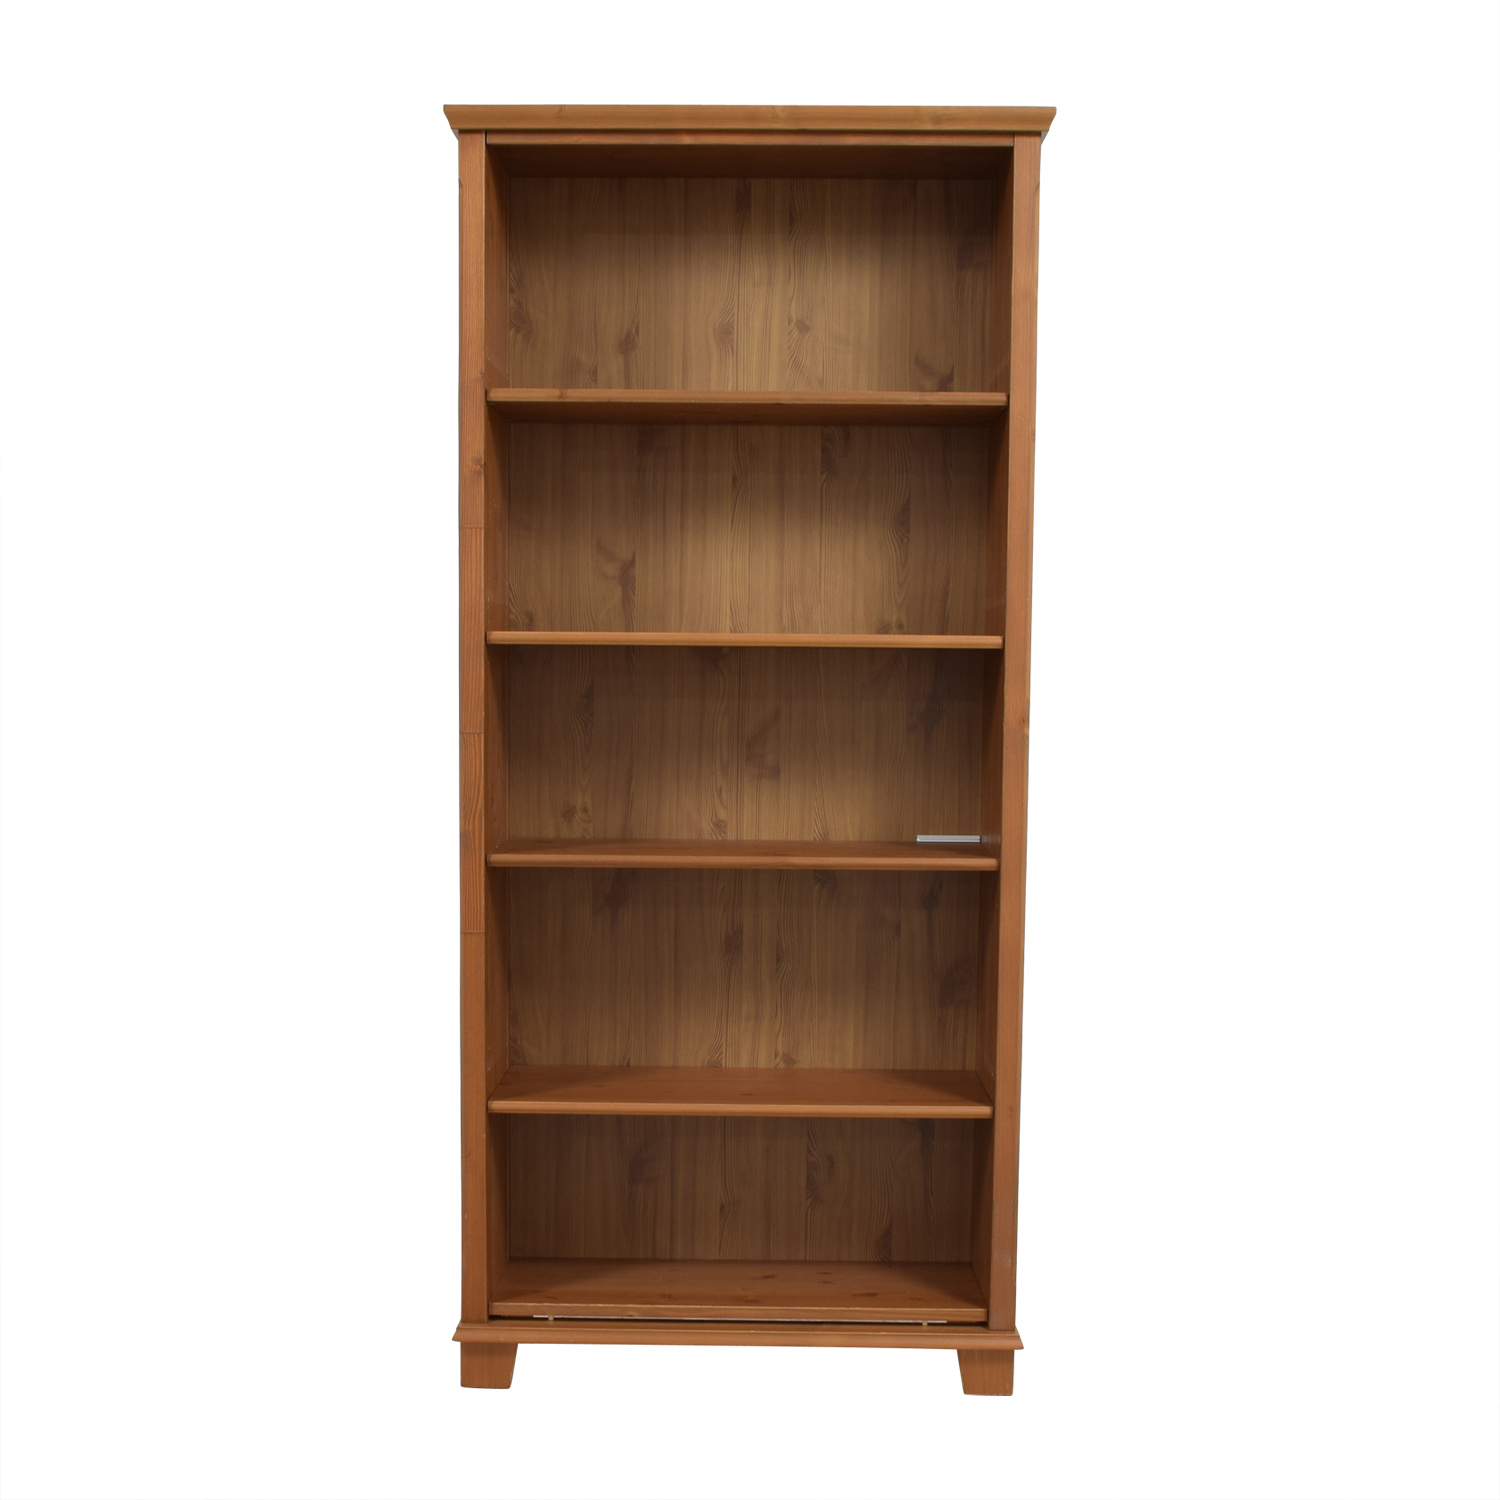 IKEA IKEA Five Shelf Bookcase for sale